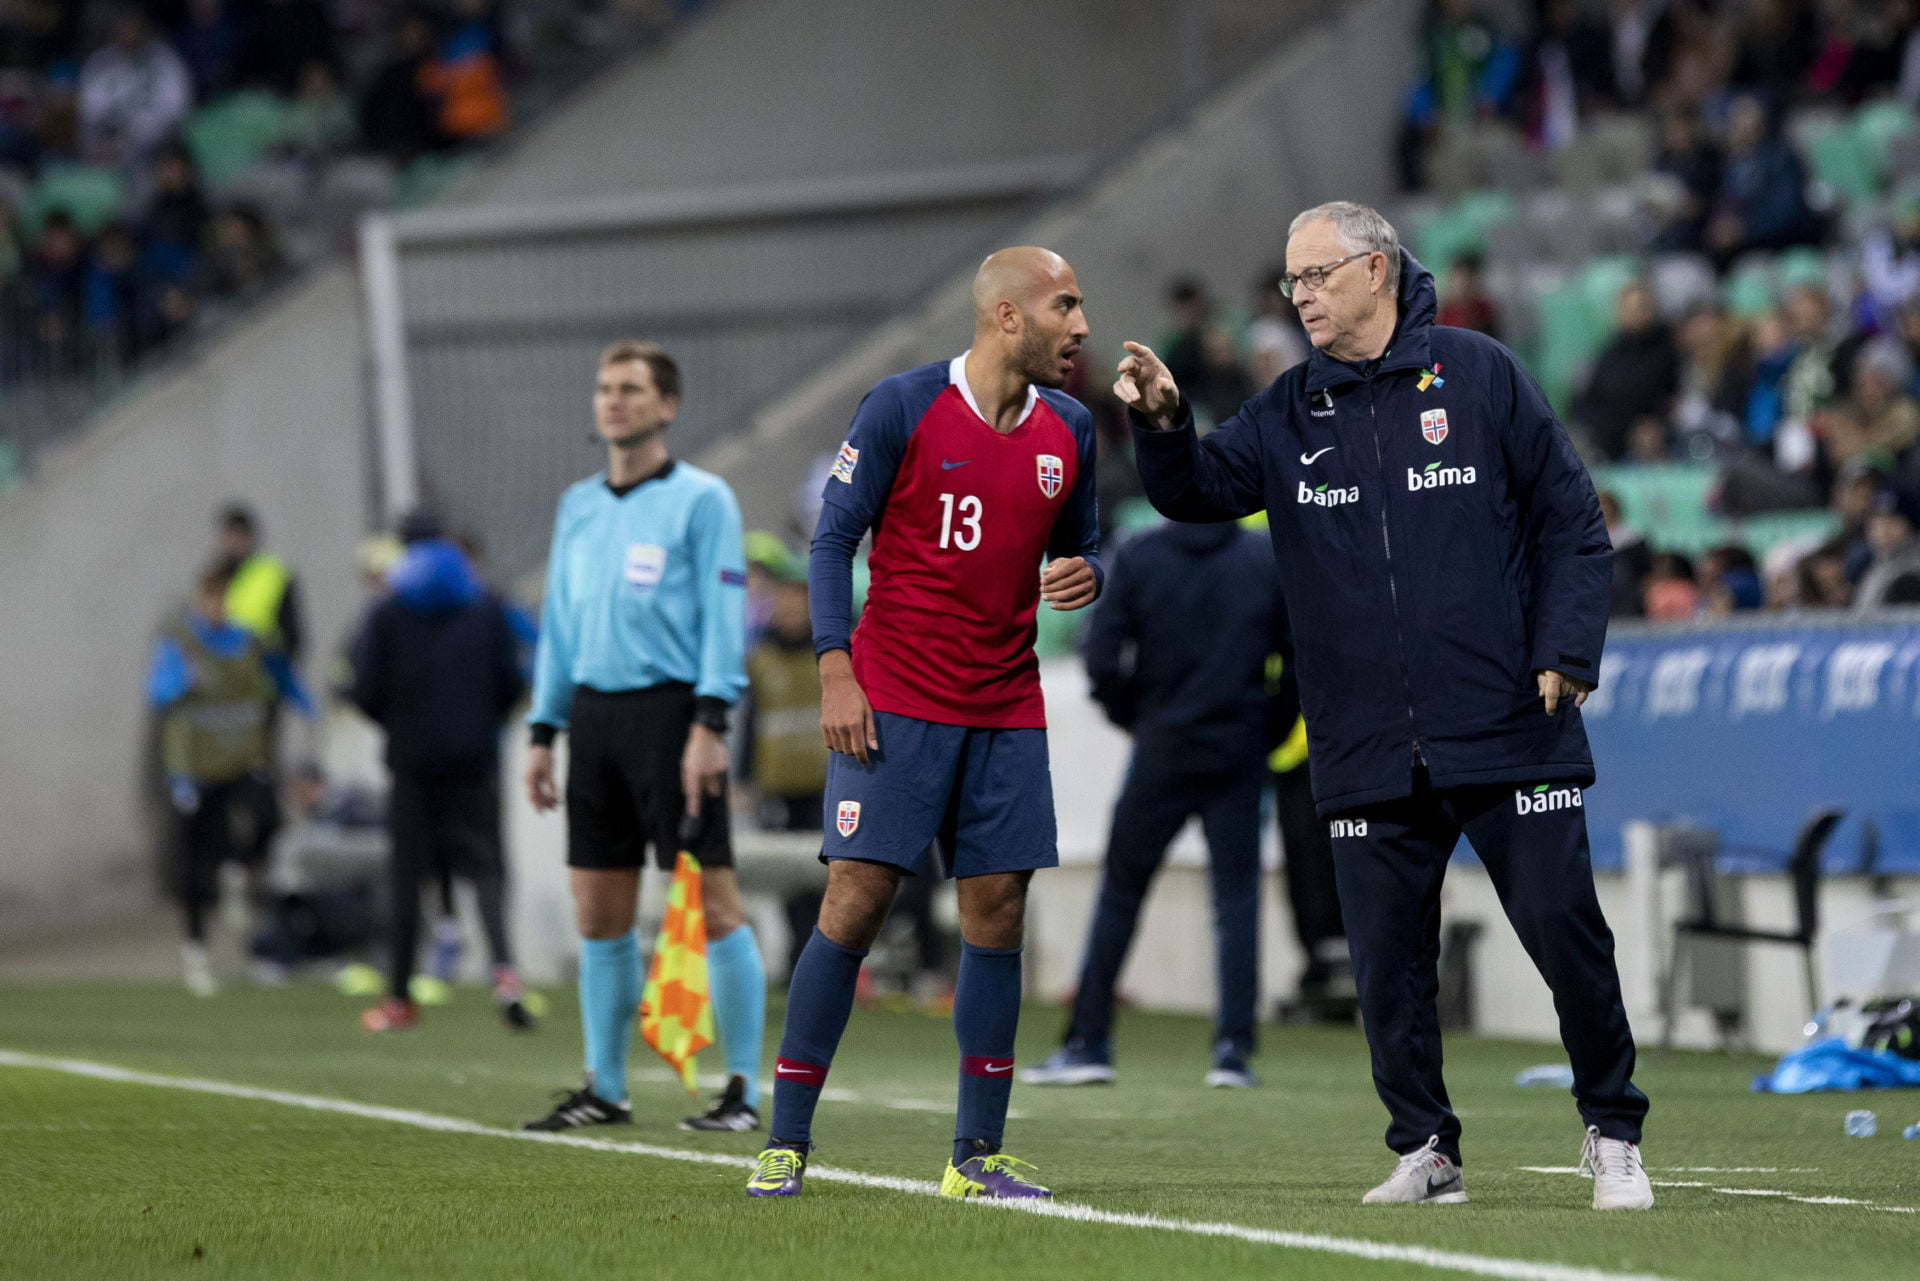 16.11.2018, Ljubljana, SLO, UEFA Nations League, Slowenien vs Norwegen, Liga C, Gruppe 3, im Bild Haitam Aleesami of Norway and Lars Lagerback, head coach of Norway // during the Nations League, League C, Group 3 match between Slovenia and Norway at the Ljubljana, Slovenia on 2018/11/16. EXPA Pictures © 2018, PhotoCredit: EXPA/ Sportida/ Urban Urbanc *****ATTENTION - OUT of SLO, FRA***** LIGA NARODOW PILKA NOZNA SEZON 2018/2019 FOT.EXPA/NEWSPIX.PL Austria, Italy, Spain, Slovenia, Serbia, Croatia, Germany, UK, USA and Sweden OUT! --- Newspix.pl *** Local Caption *** www.newspix.pl mail us: info@newspix.pl call us: 0048 022 23 22 222 --- Polish Picture Agency by Ringier Axel Springer Poland